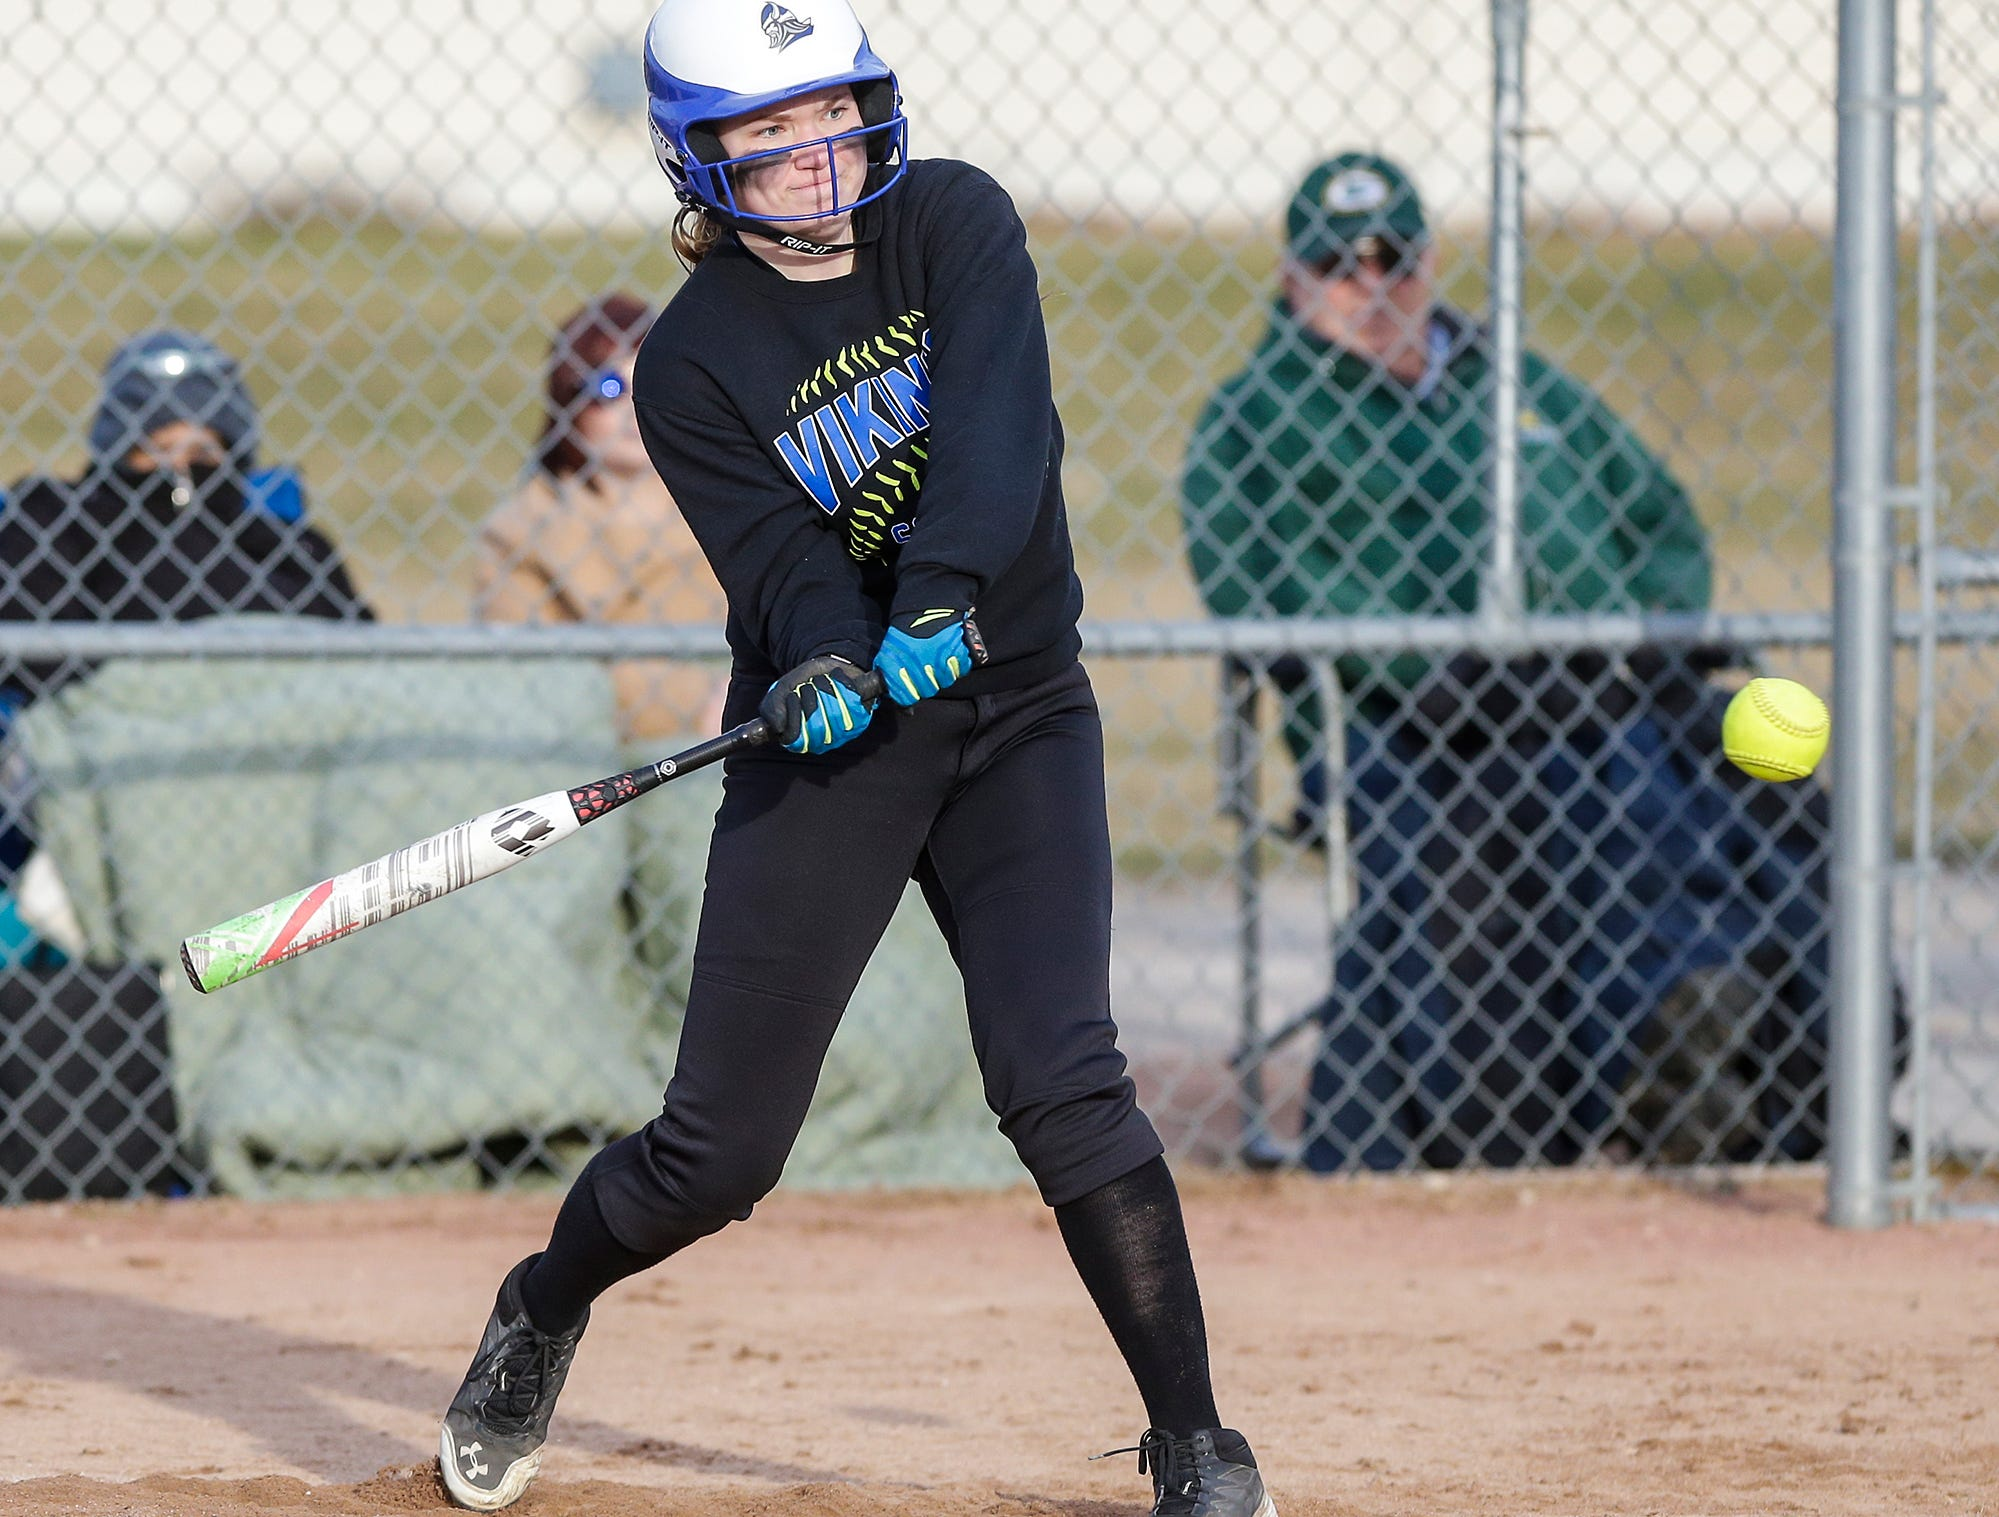 Winnebago Lutheran Academy softball's Kylie Schwefel hits a lead off single in the fourth inning against Laconia High School April 9, 2019 during their game in Fond du Lac, Wis. Laconia won the game 25-9. Doug Raflik/USA TODAY NETWORK-Wisconsin